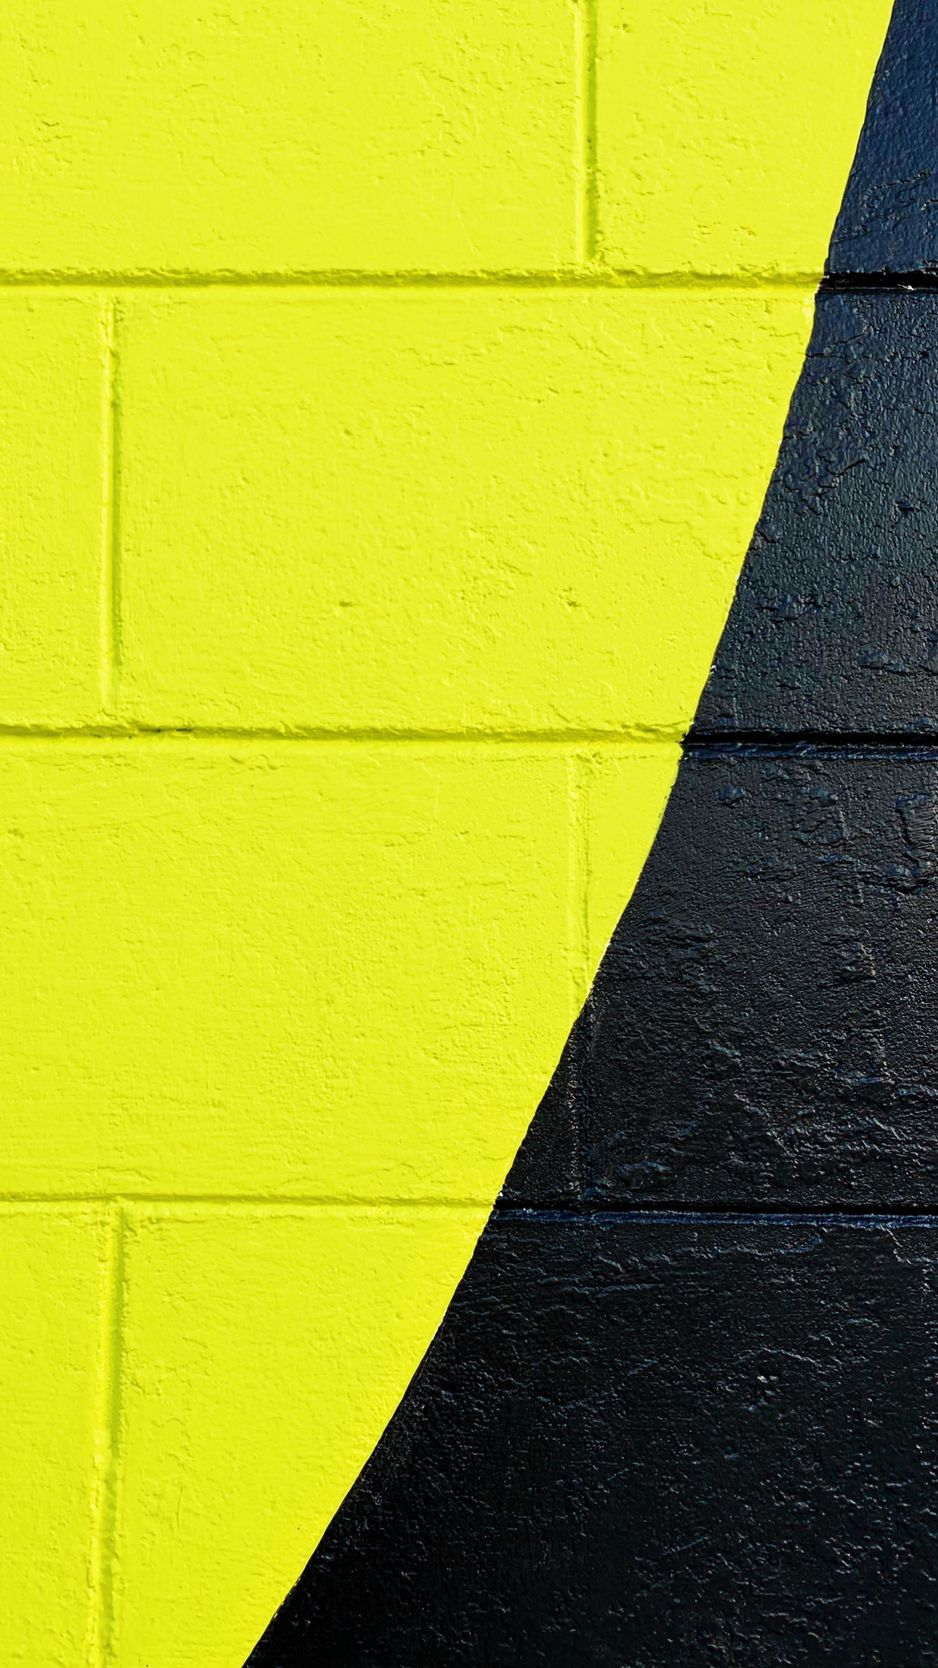 Wallpaper Wall Paint Surface Yellow Black Yellow And Black Background Iphone 938x1668 Download Hd Wallpaper Wallpapertip